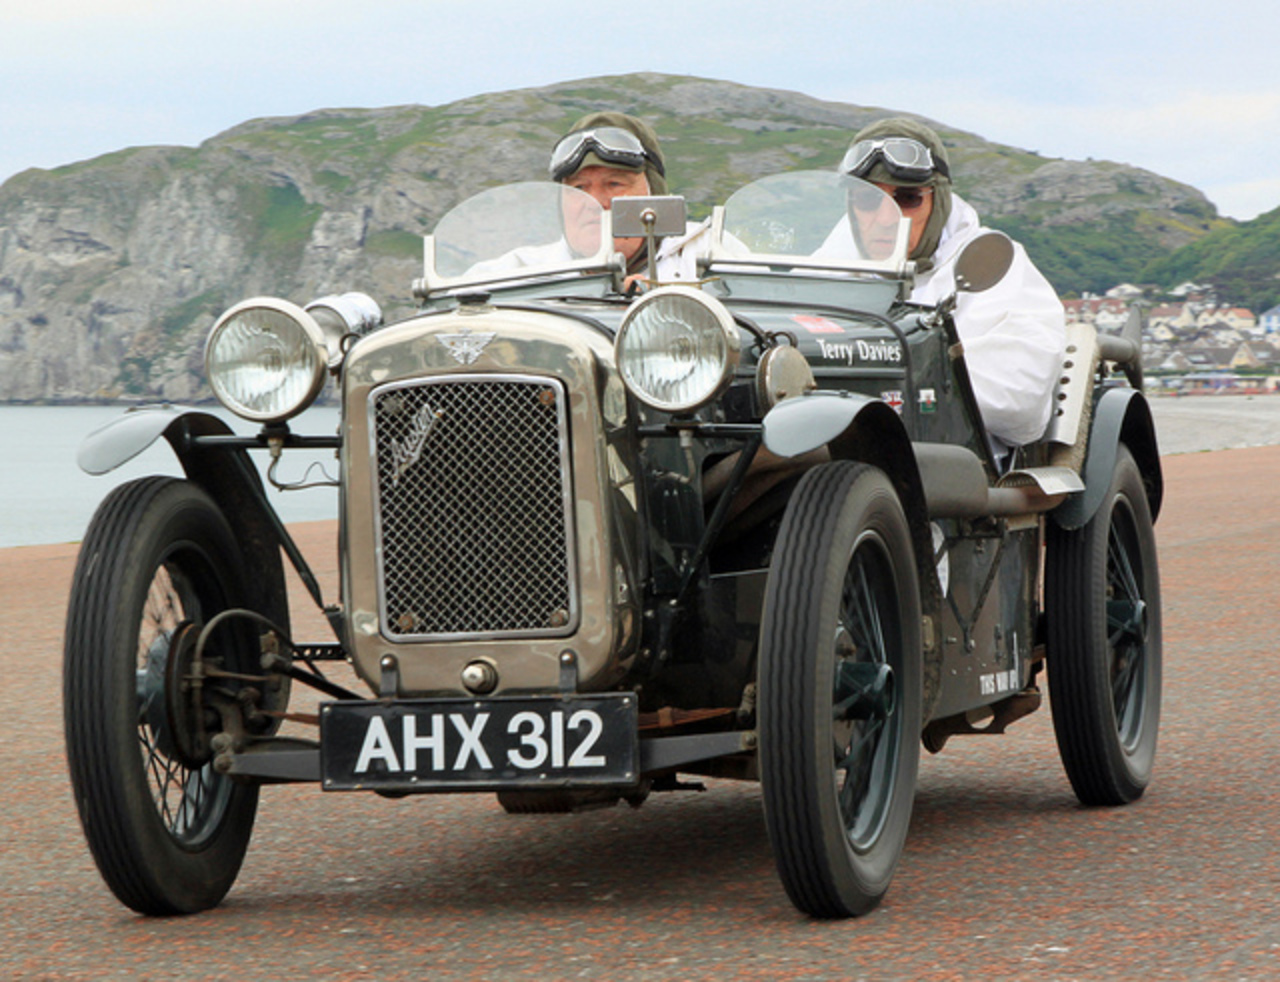 Austin 7 Ulster - Three Castles Rally 2012 - 02 | Flickr - Photo ...